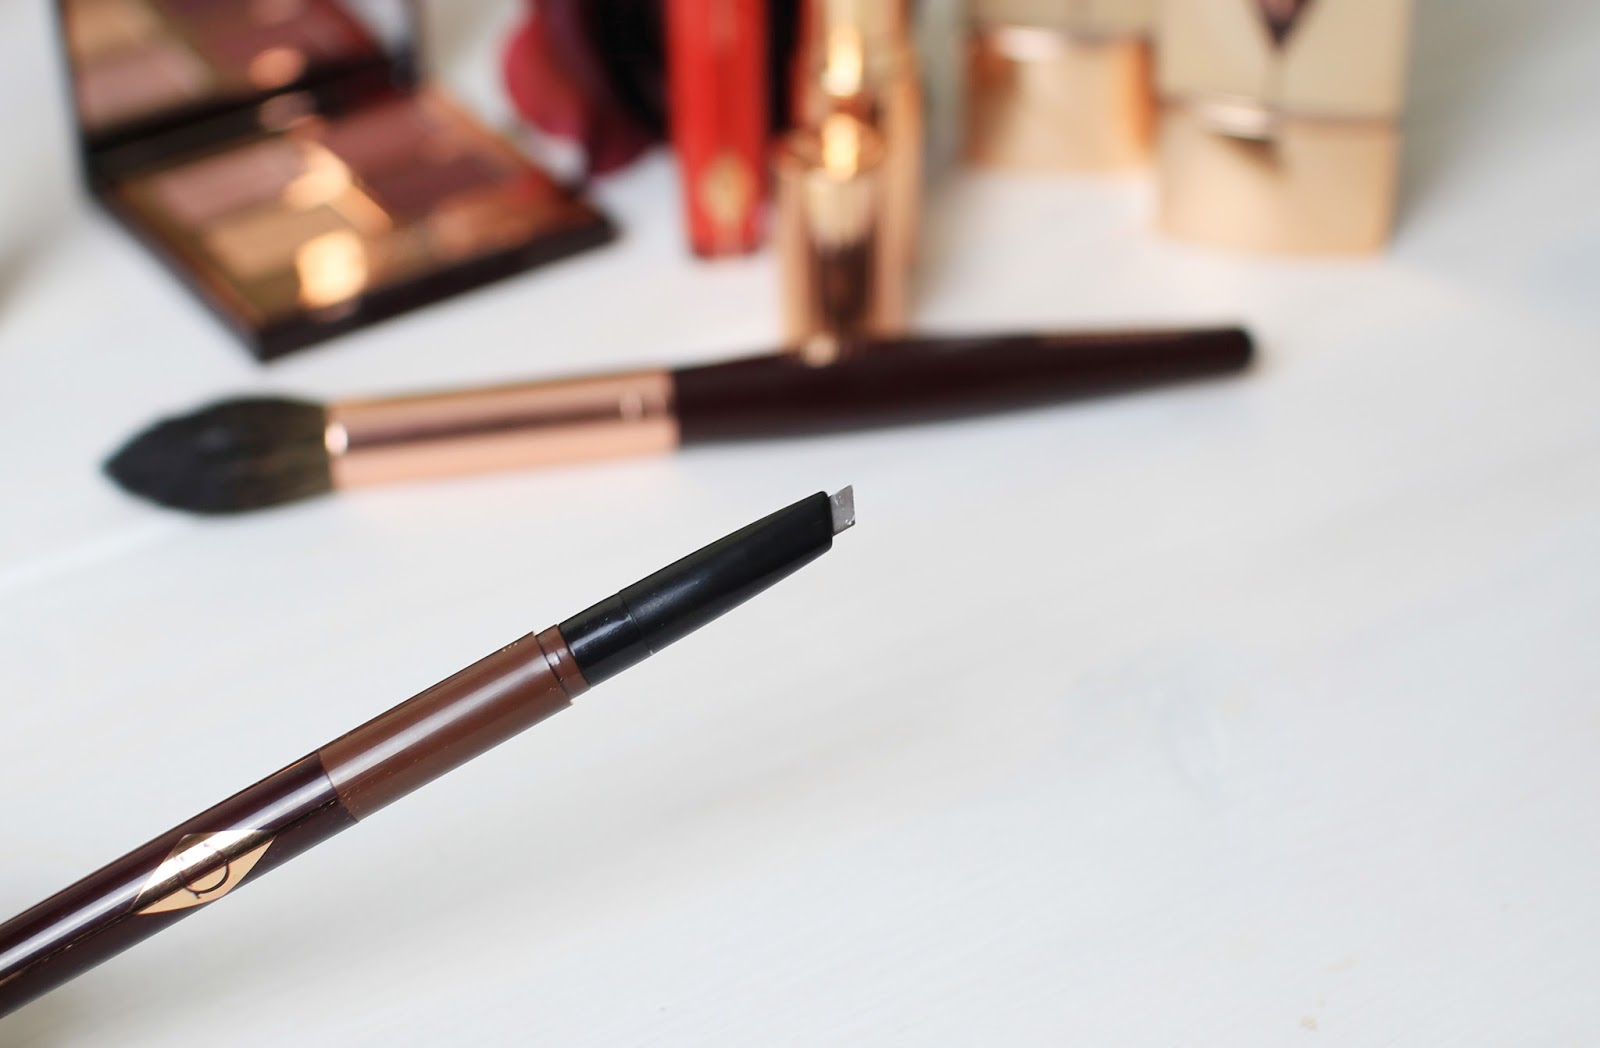 Charlotte Tilbury brow pencil in cara d